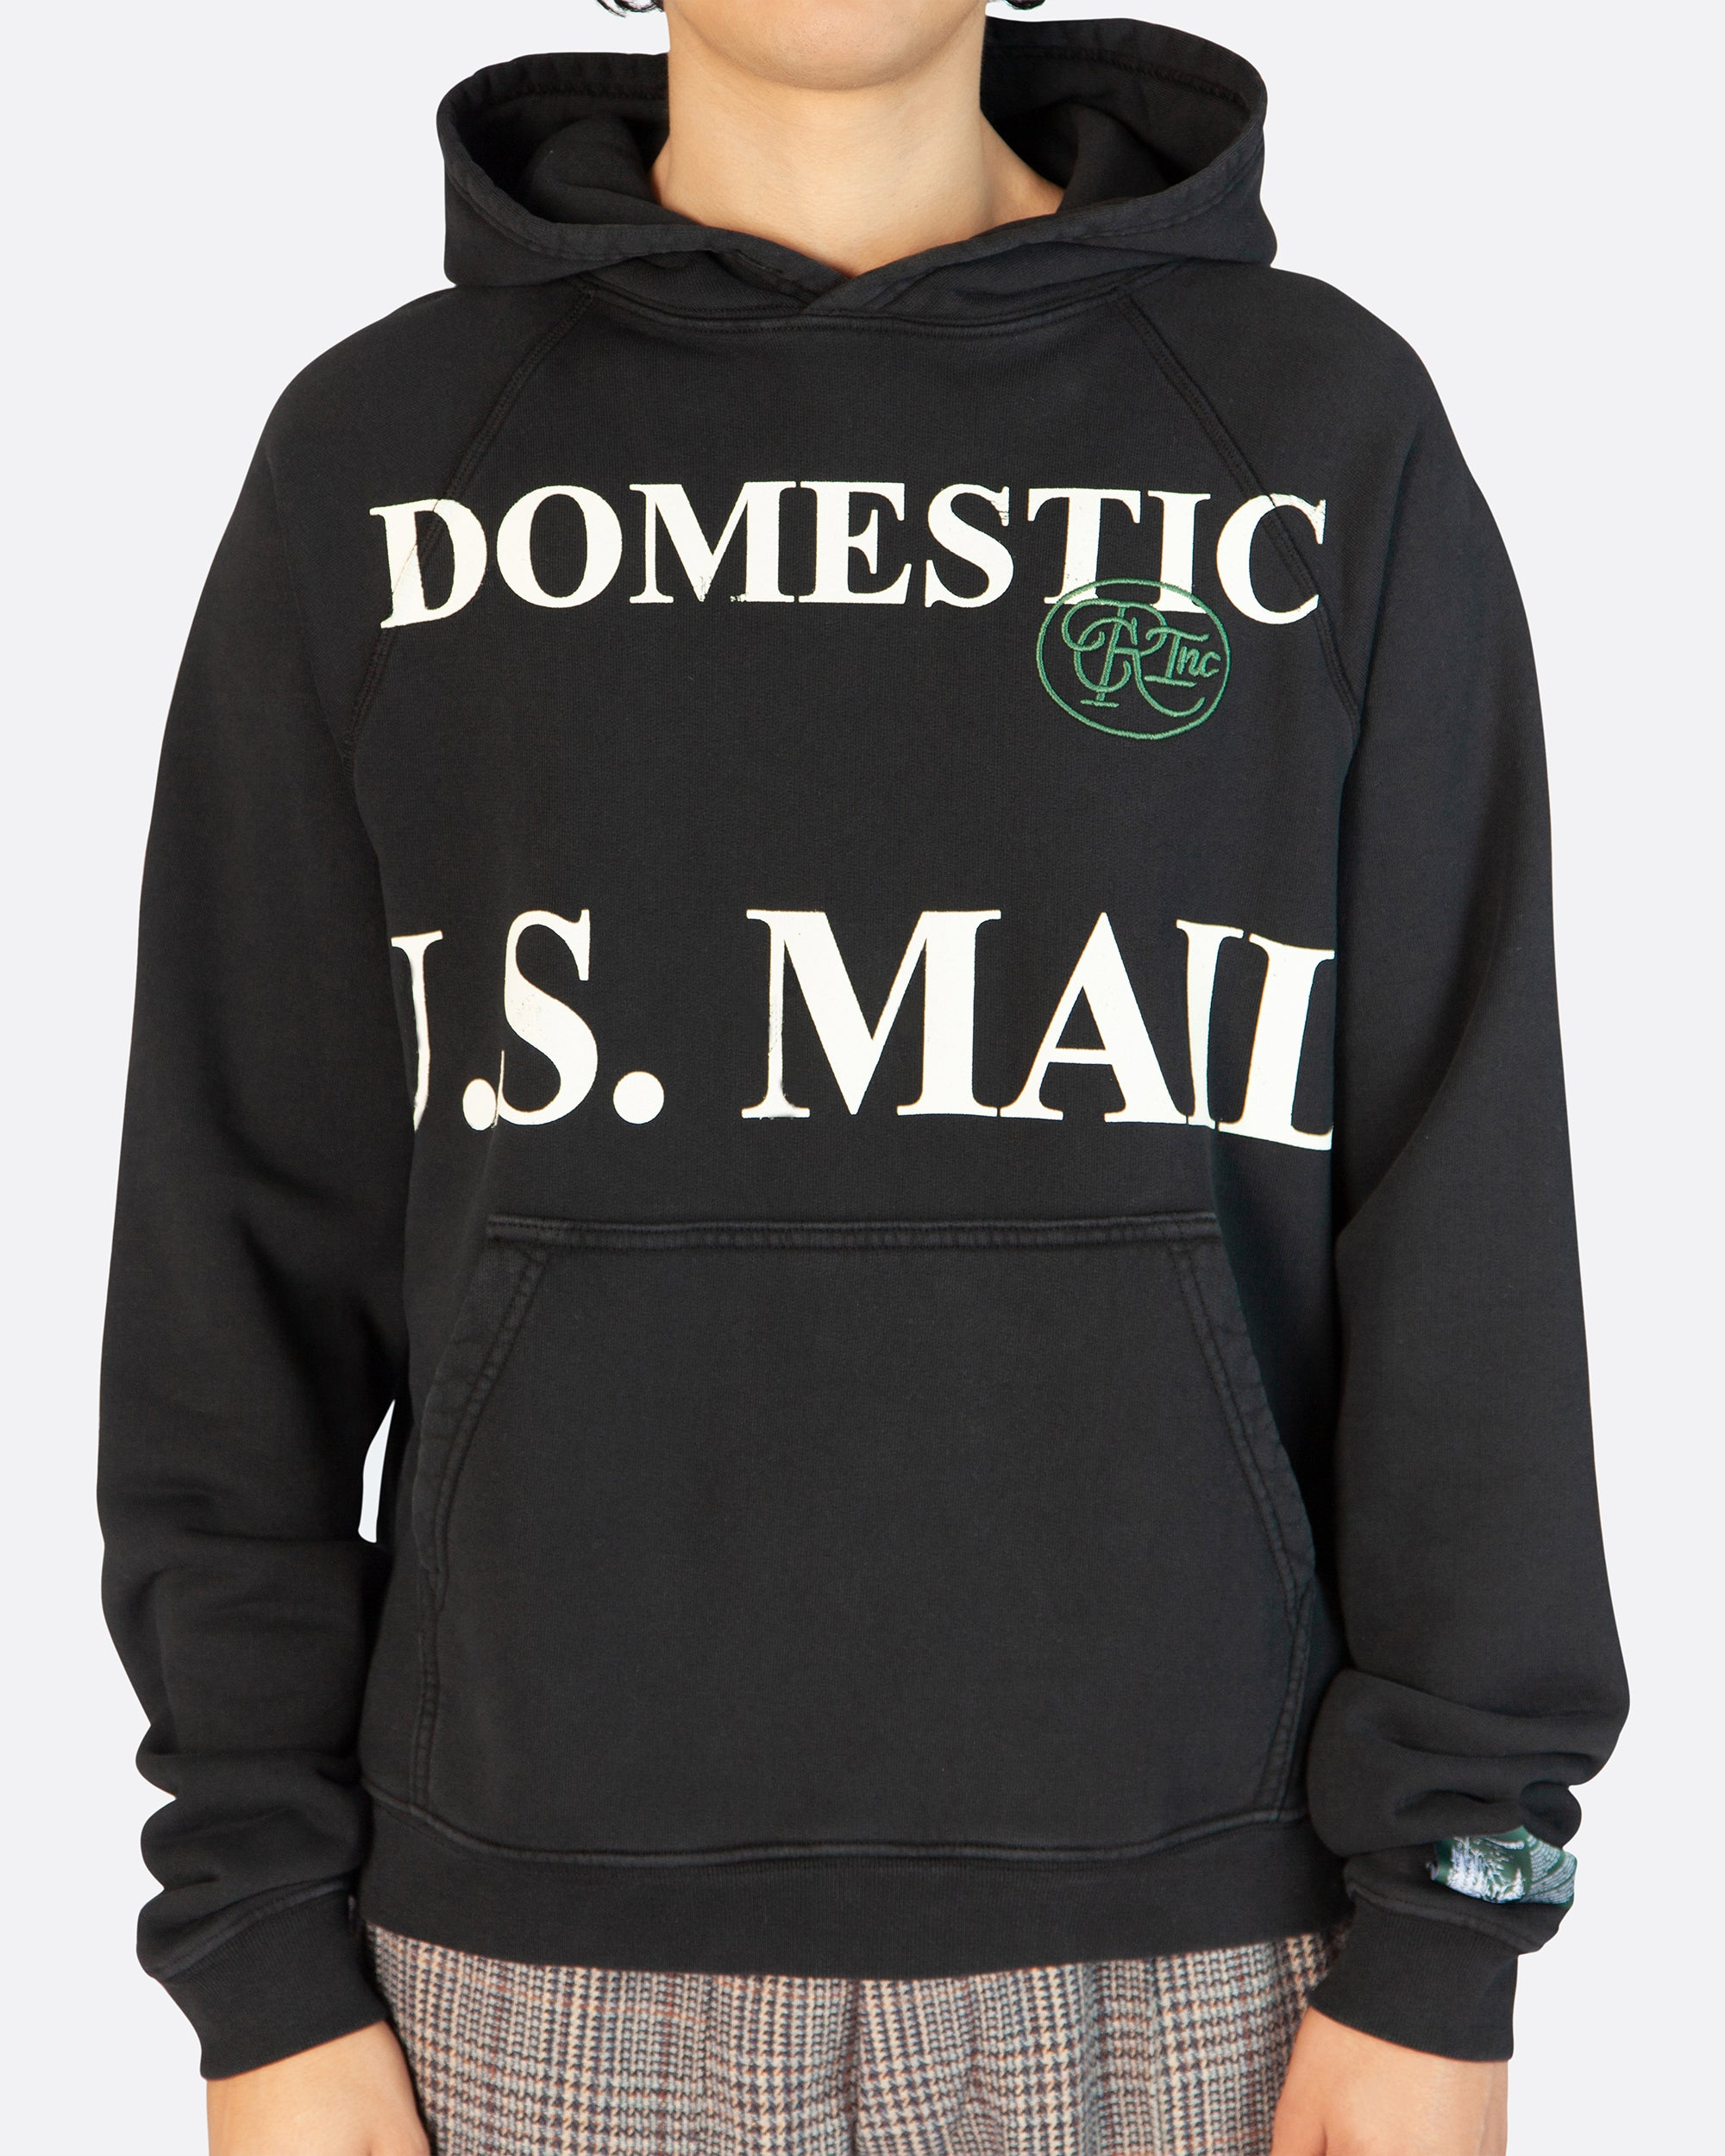 Domestic Mail Aged Hooded Sweatshirt in Vintage Black